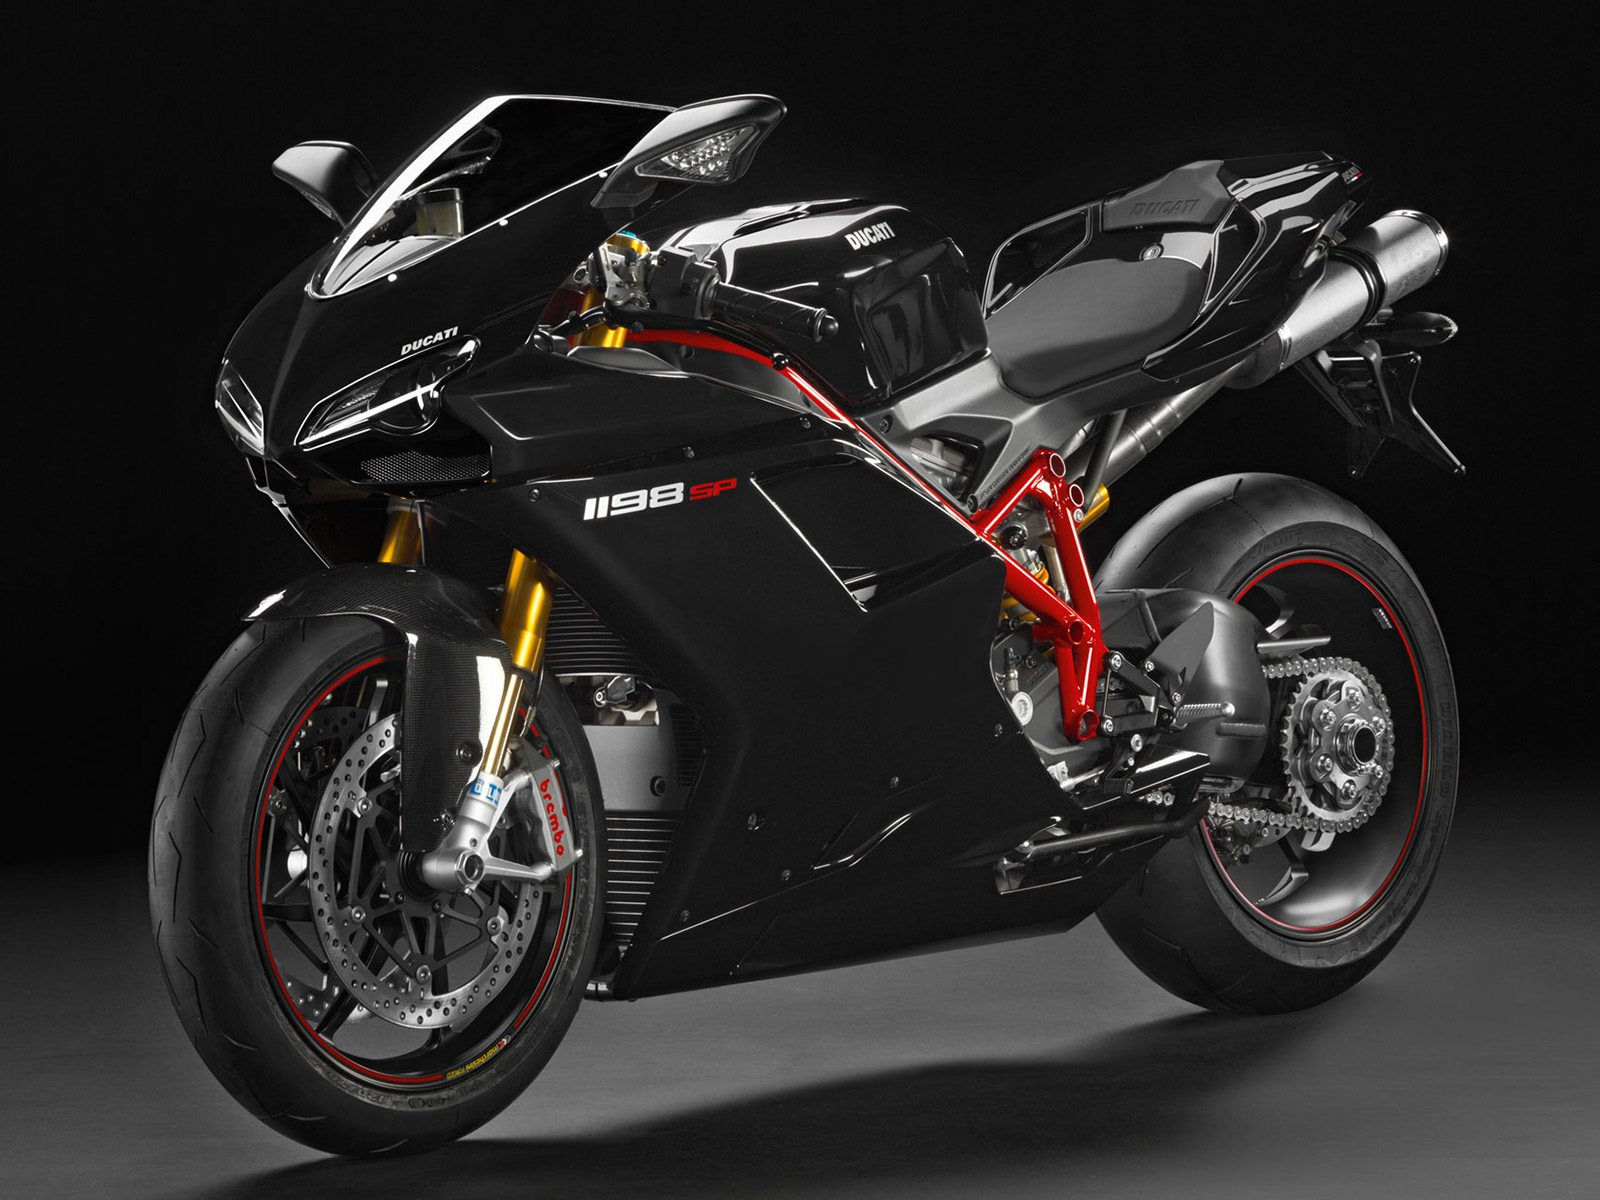 ducati wallpaper hd - wallpapersafari